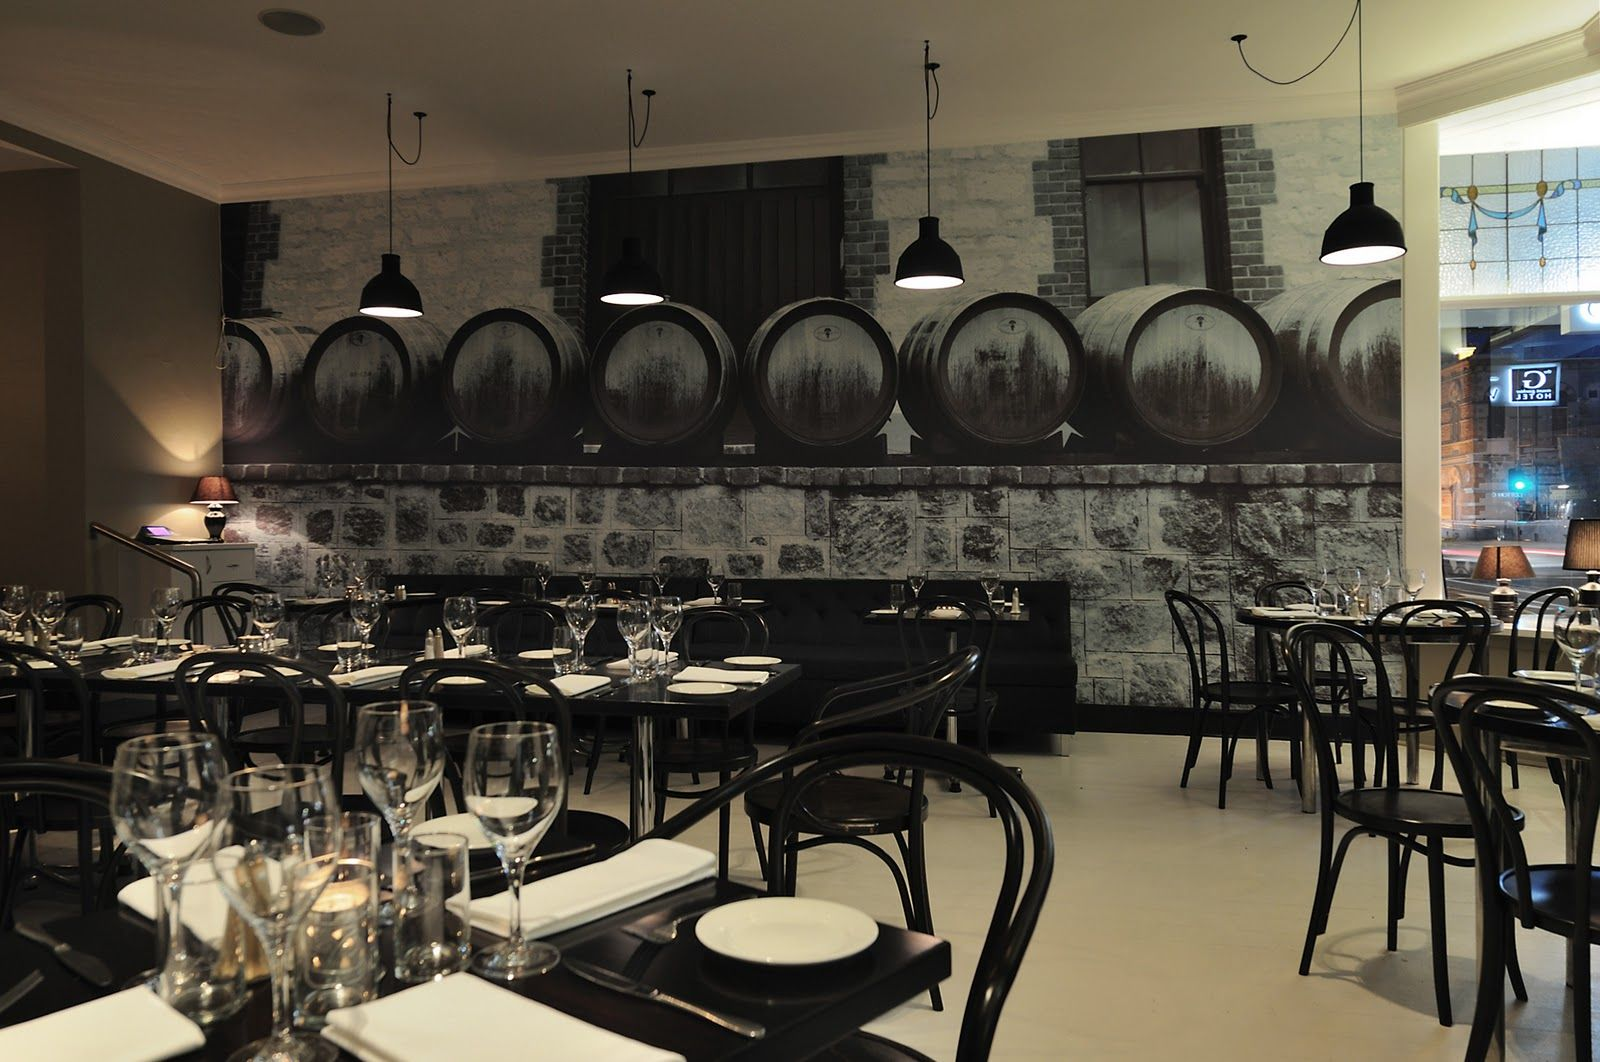 1862 Wine Bar U0026 Grill By Samantha Agostino, Mount Gambier Australia Store Design  Bar And Restaurant